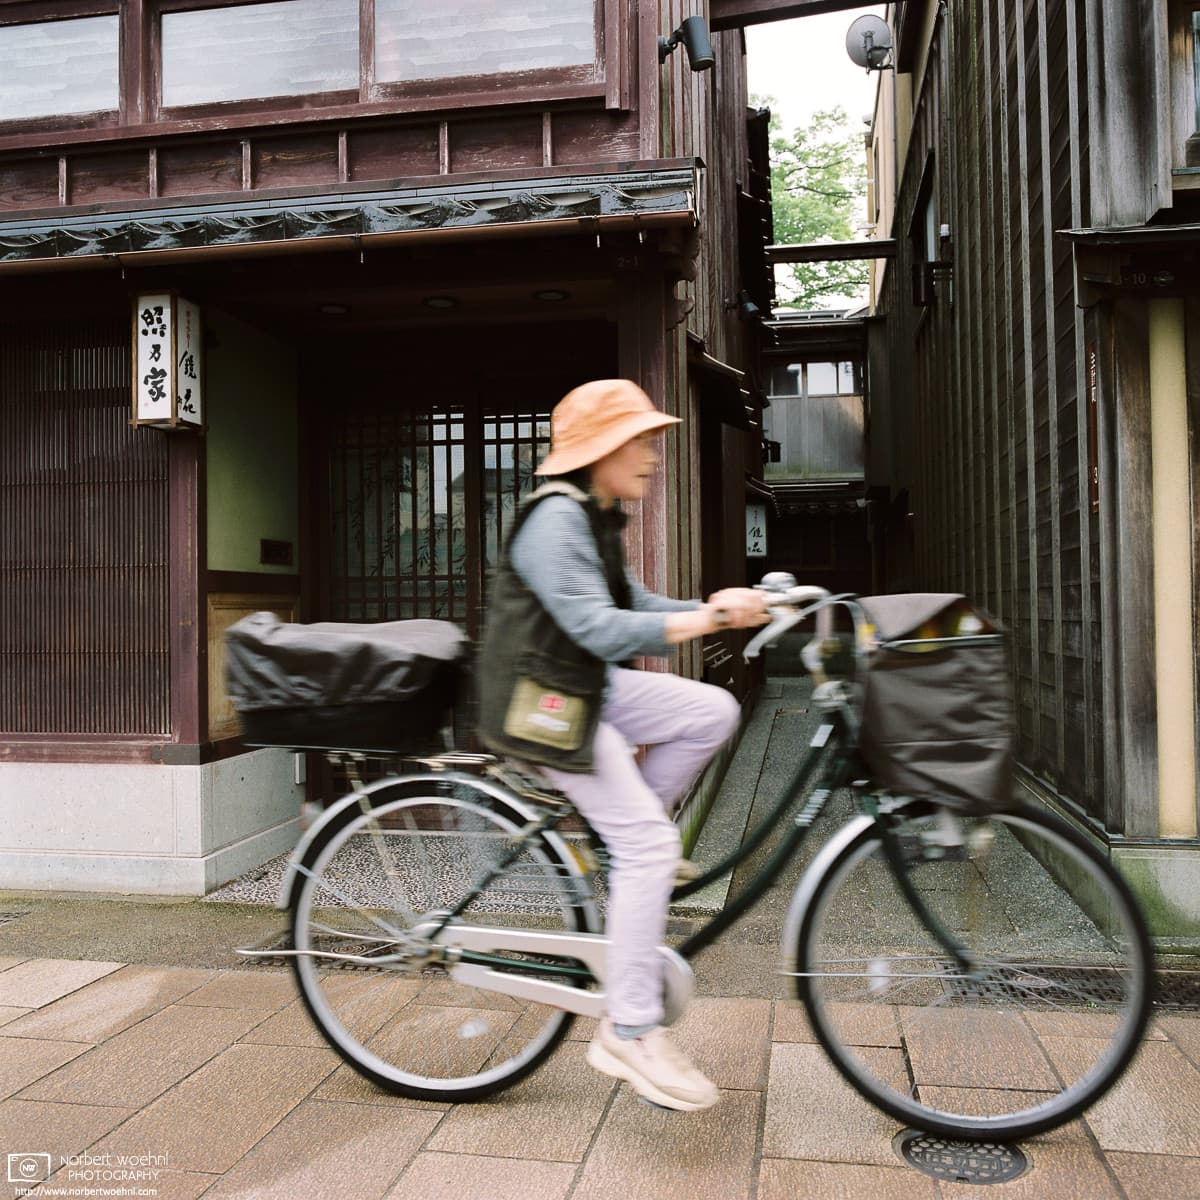 Kazue-machi Chayagai Old Woman Bicycle, Kanazawa, Japan Photo